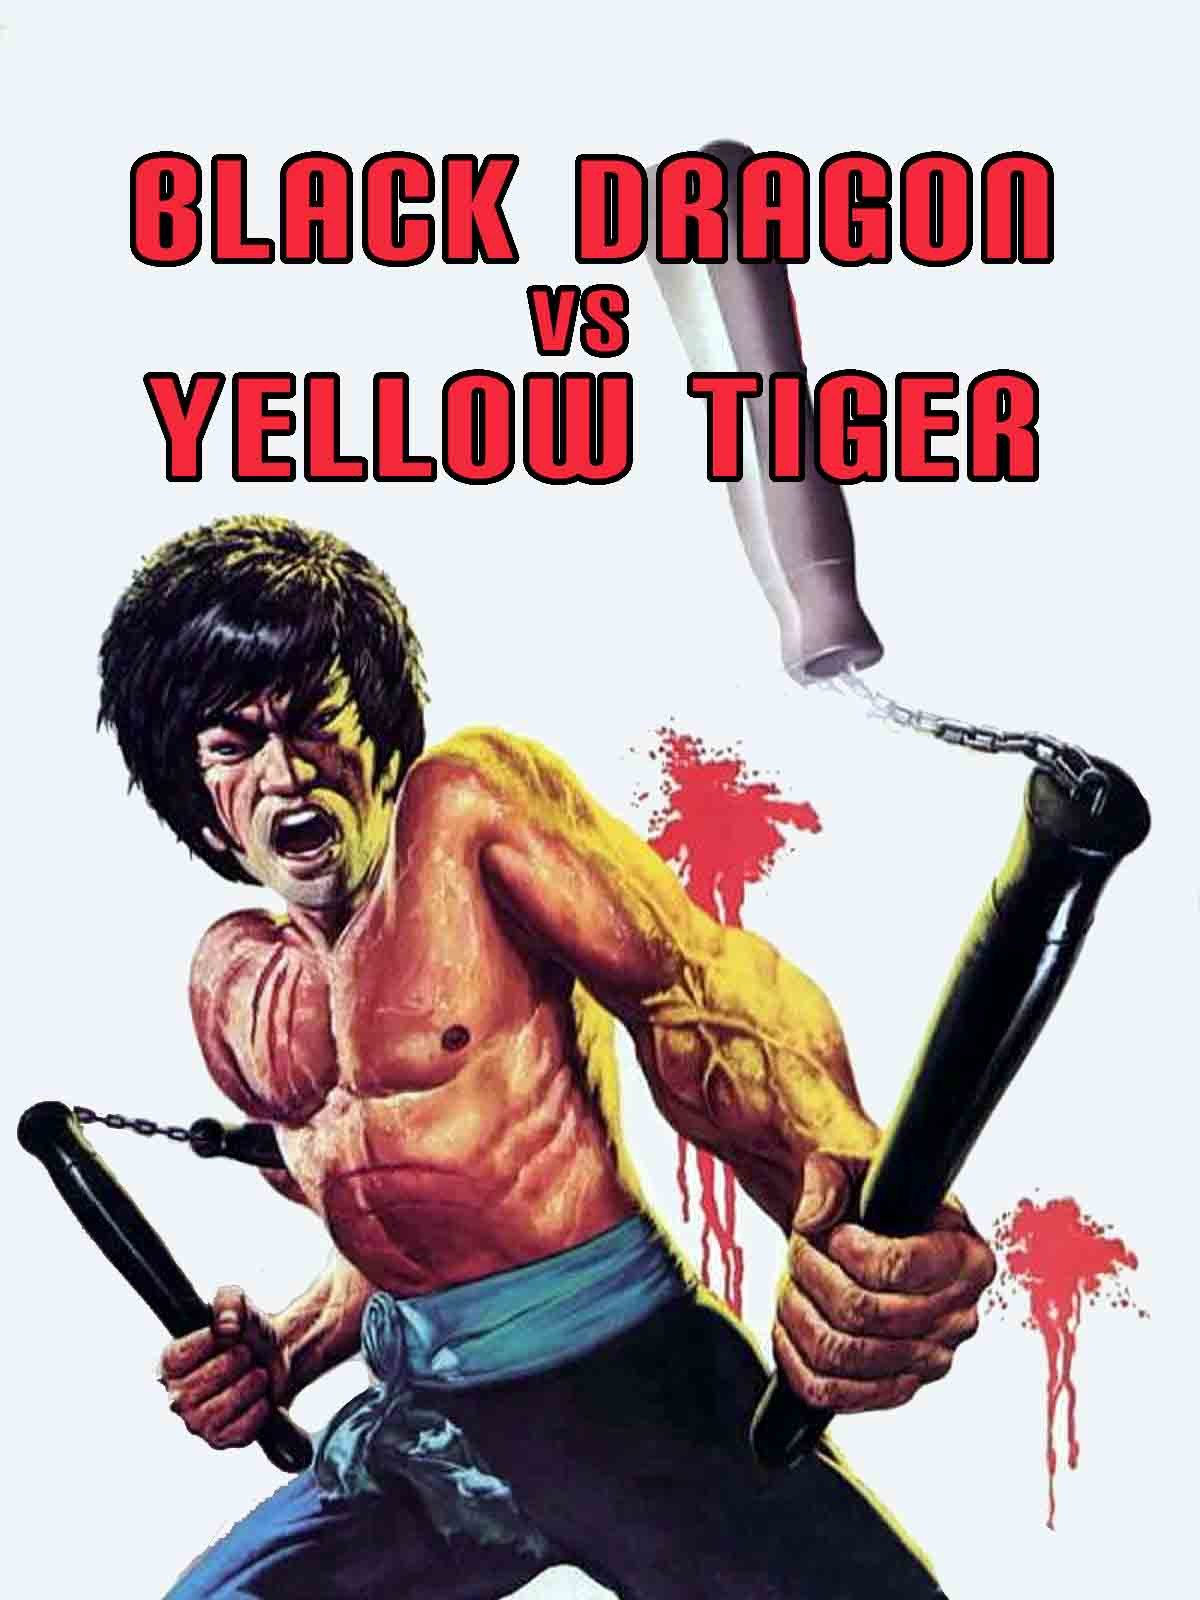 Black Dragon vs Yellow Tiger